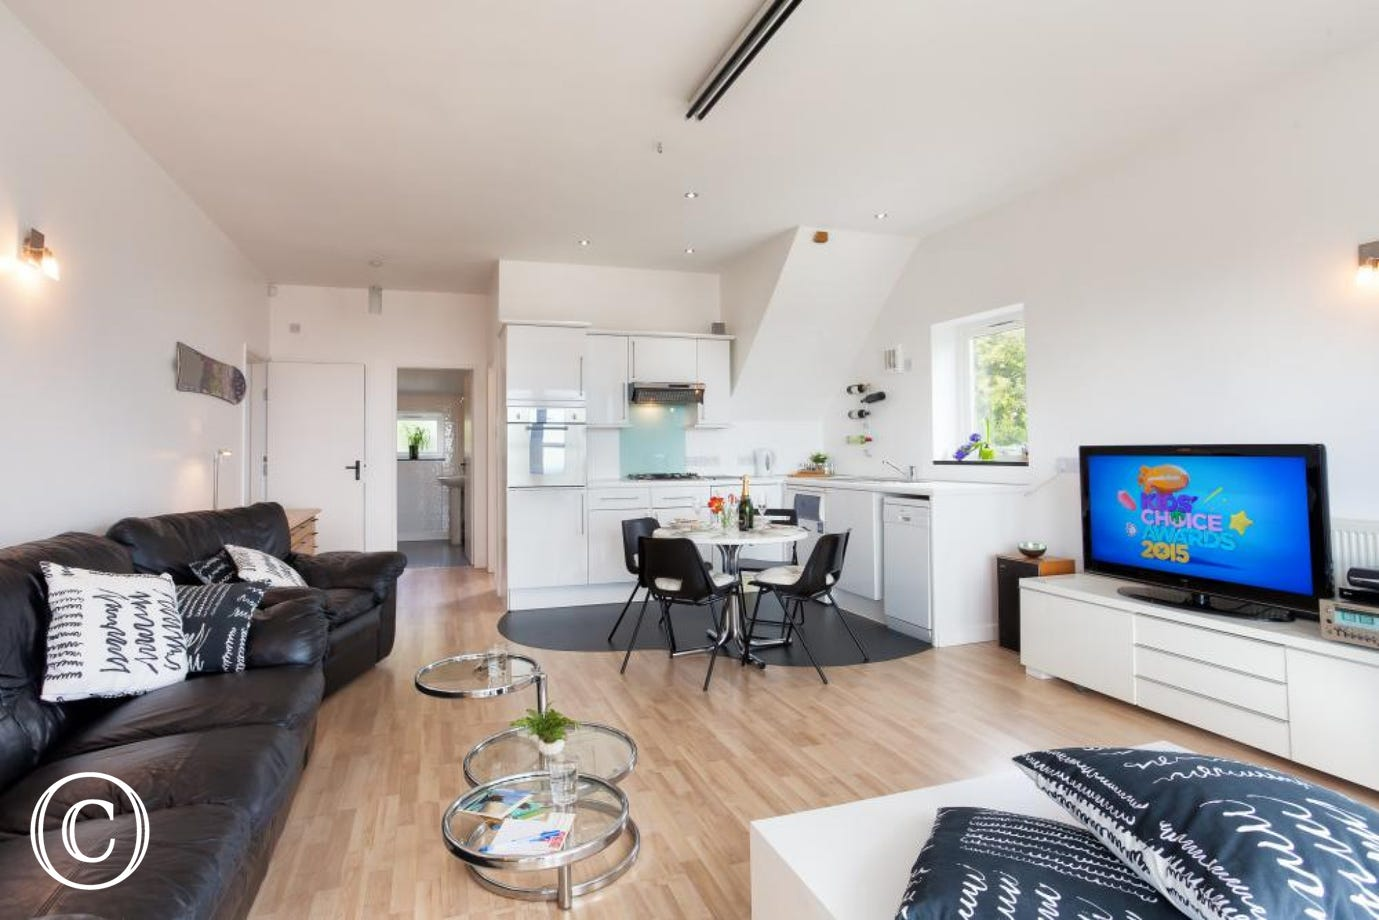 Relaxing Seaside Holiday Apartment in Torquay with a bright, spacious and homely feel